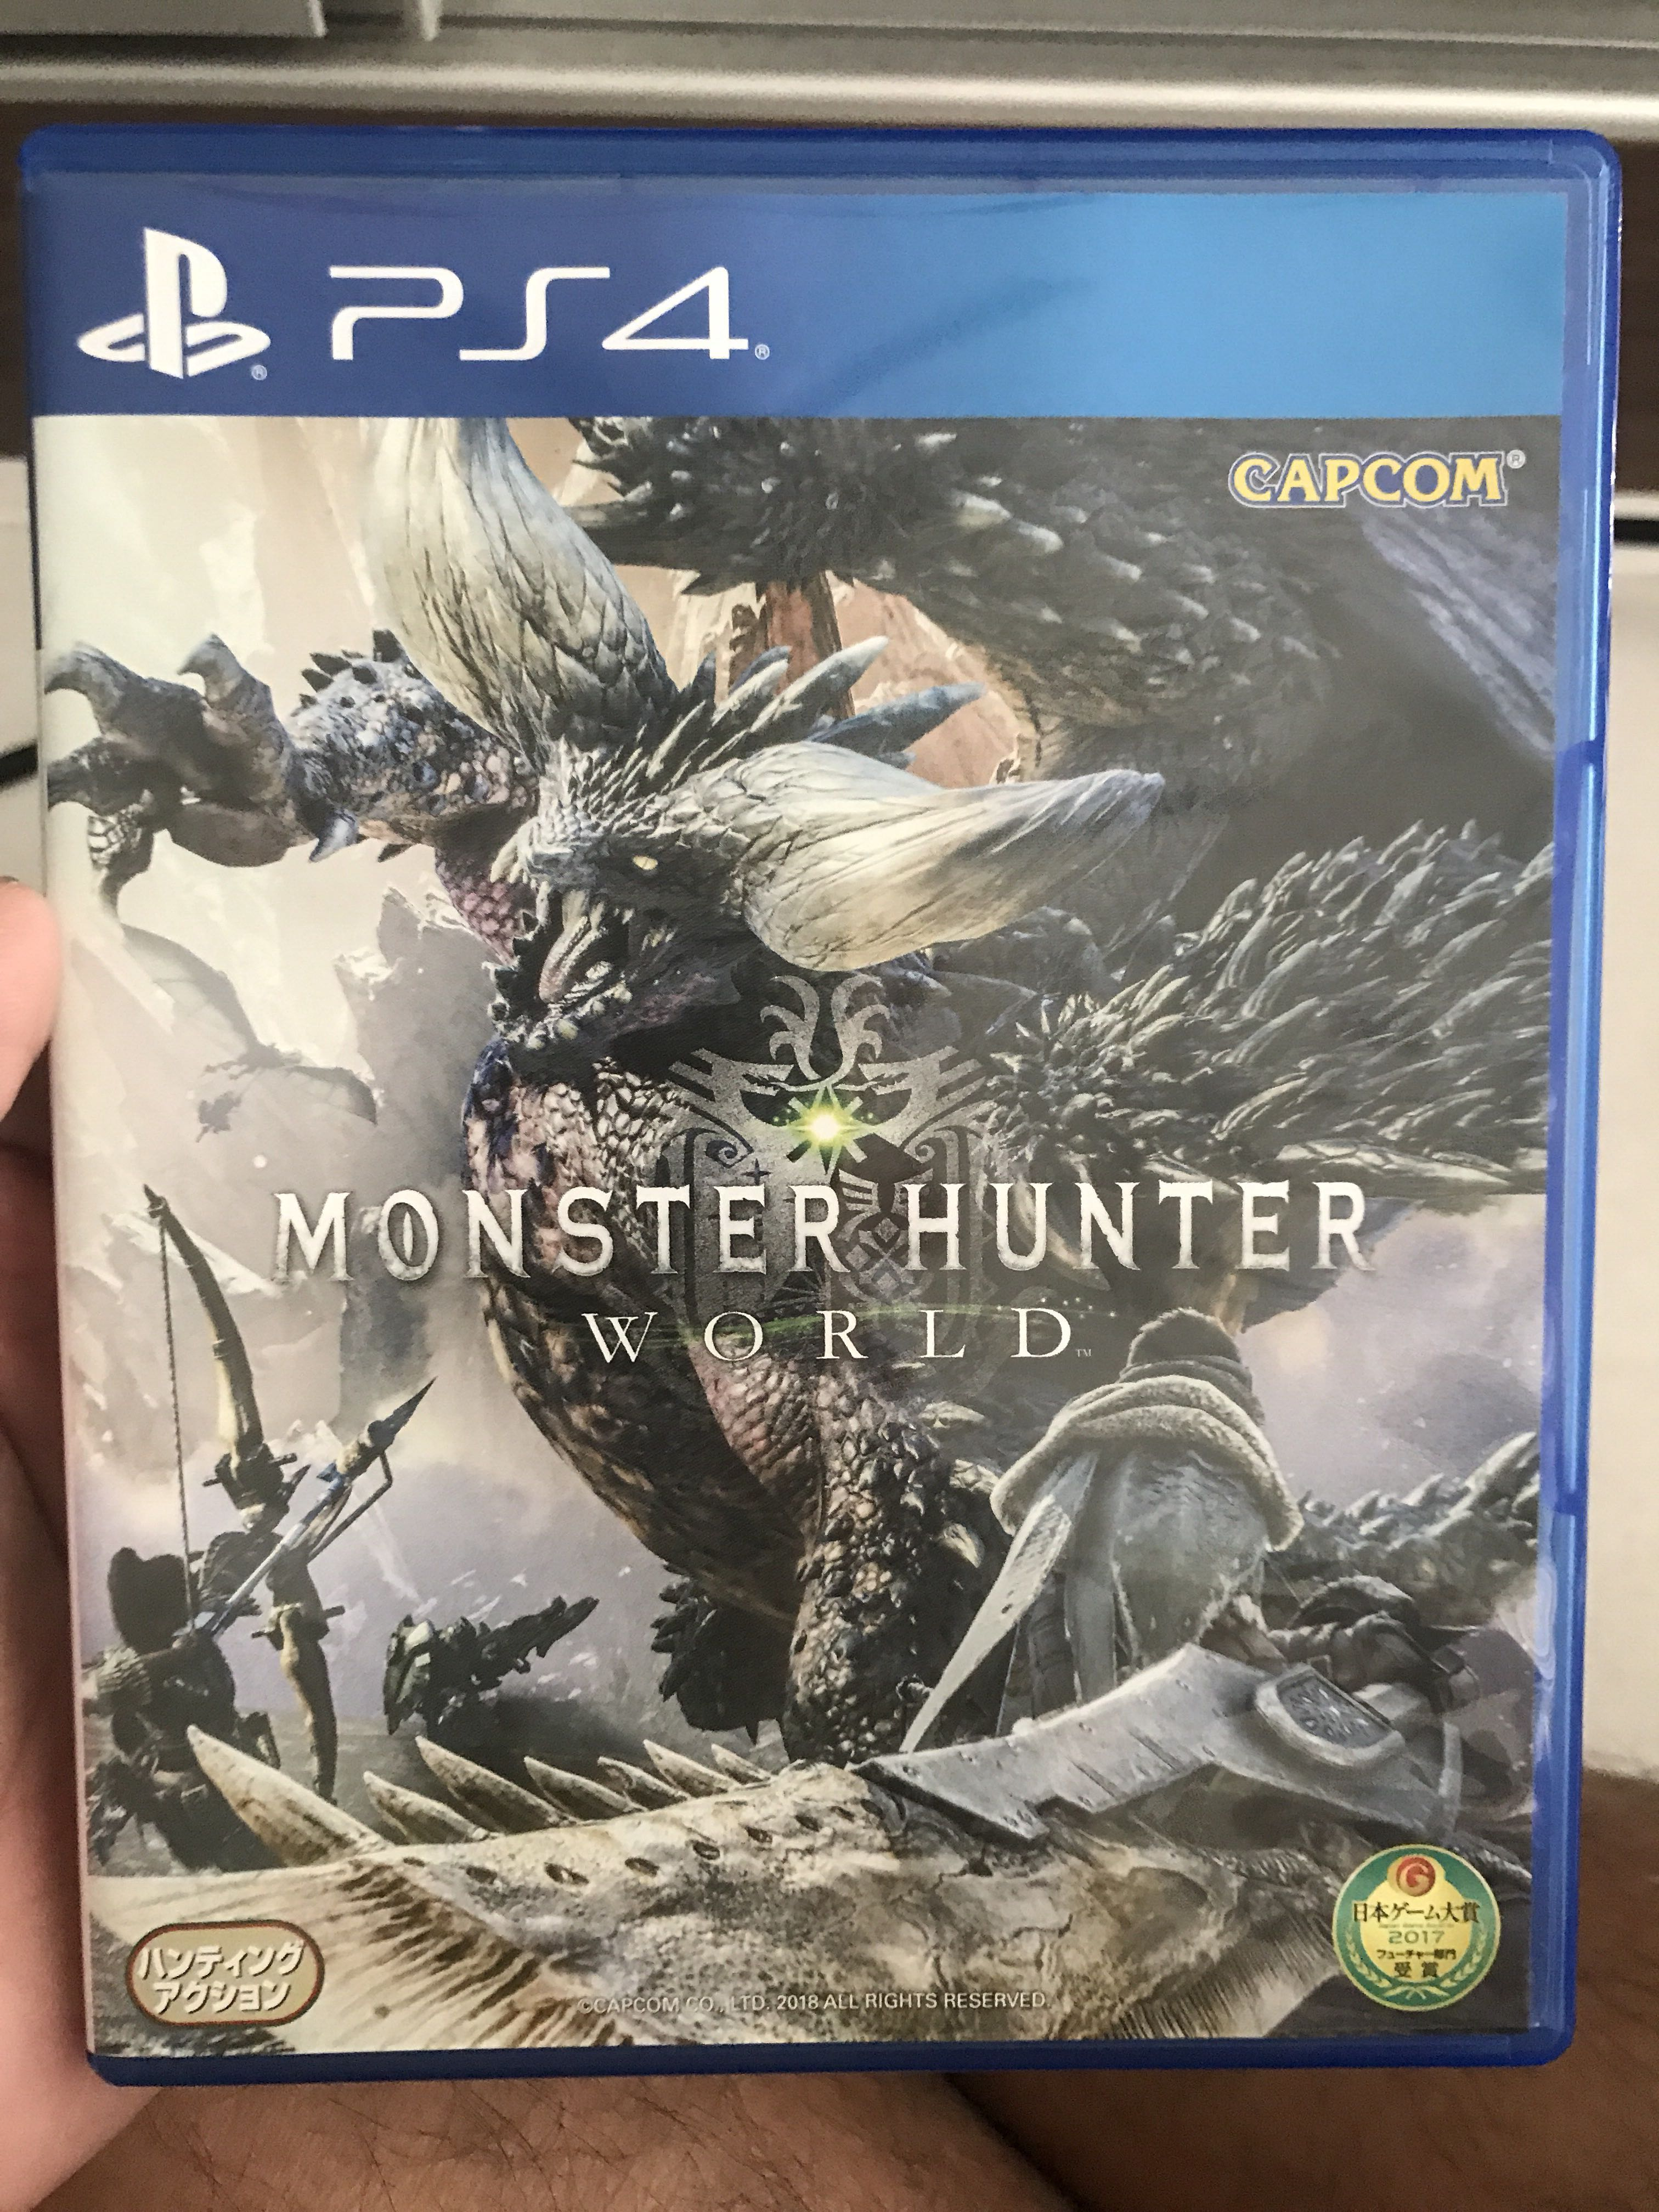 PS4 monster hunter world plas version with dlc still not